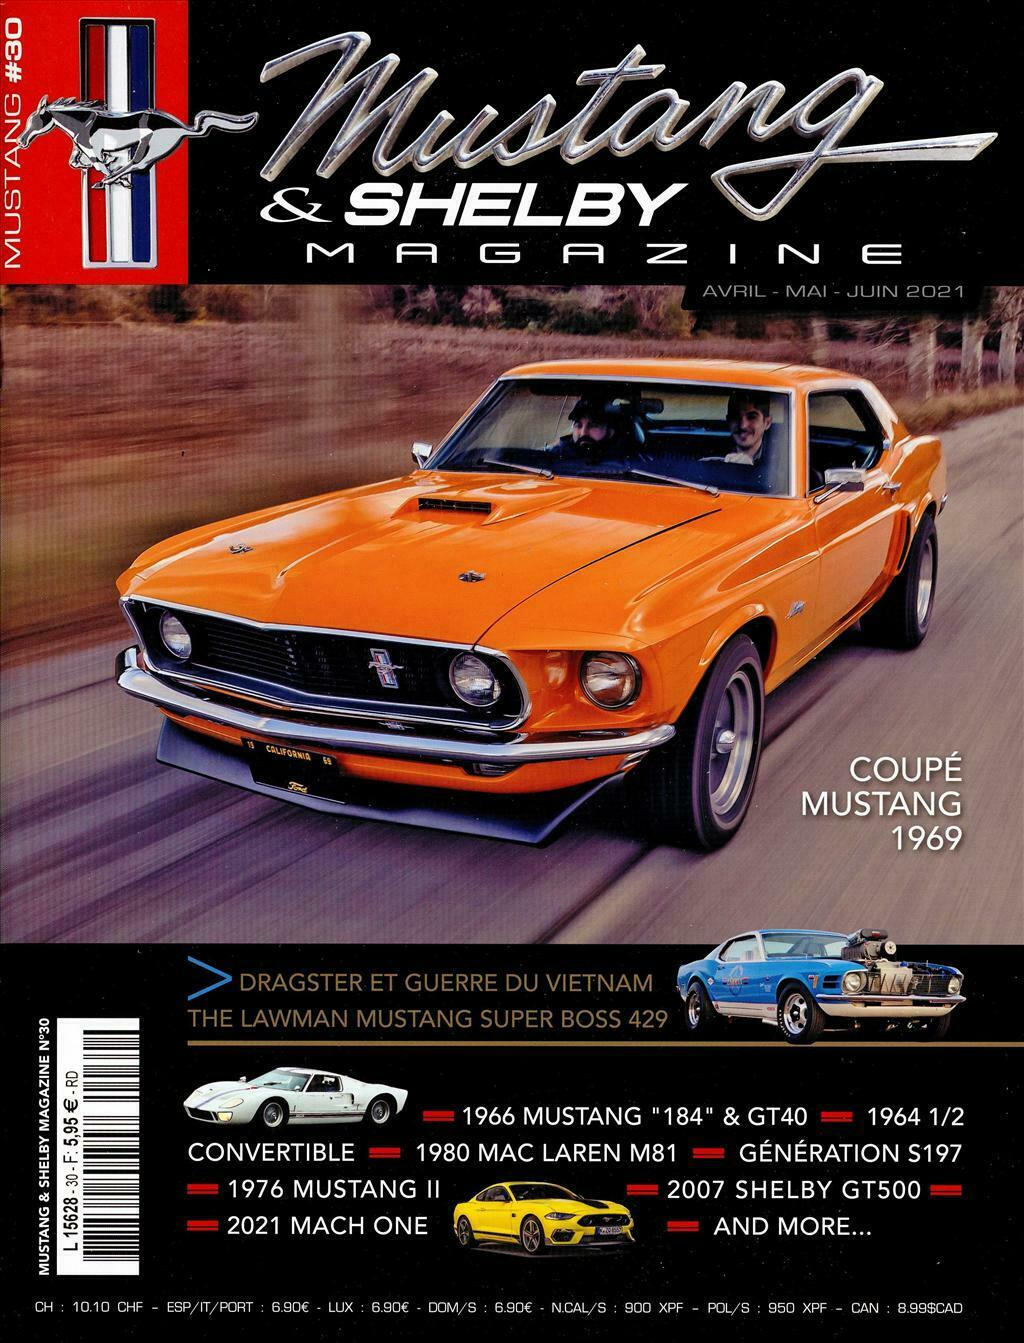 Mustang & Shelby Magazine n°30, Avril 2021